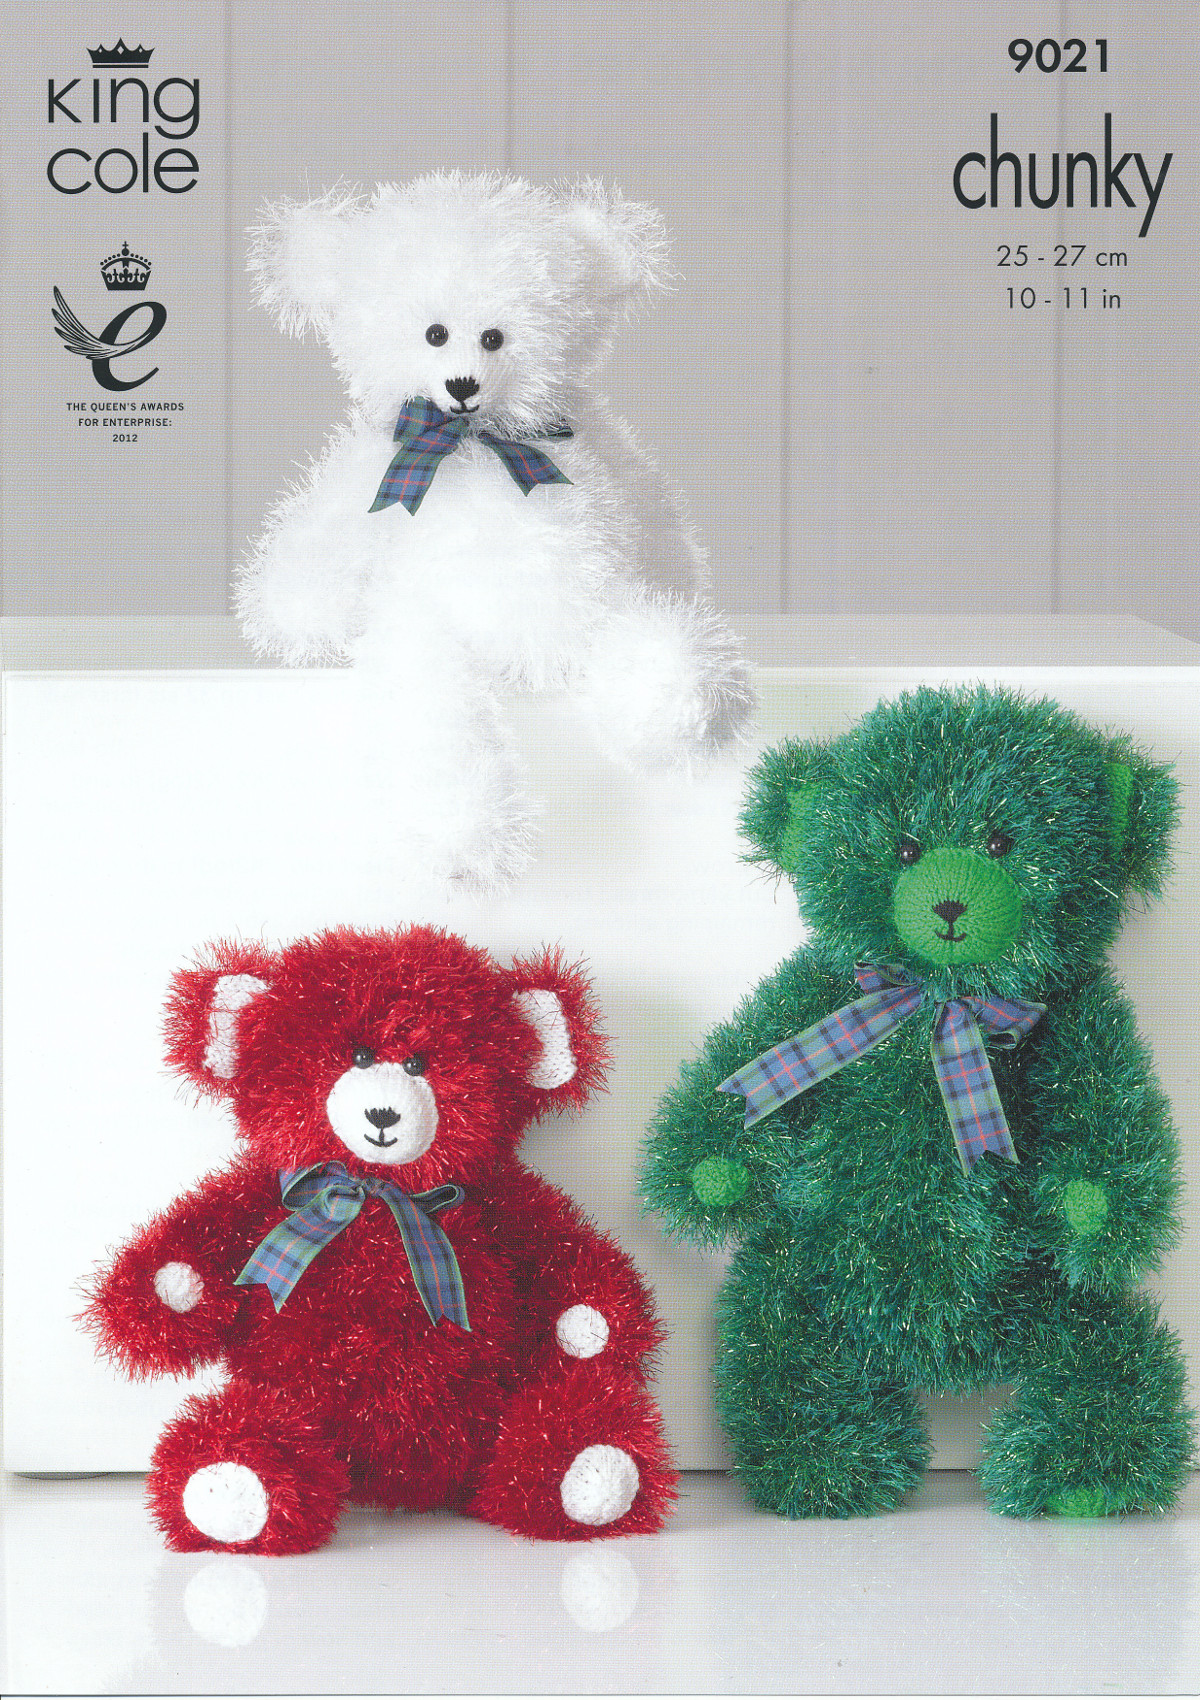 Teddy Bear Tinsel Chunky Knitting Pattern King Cole Fun Animal Toy Makes 3 Si...